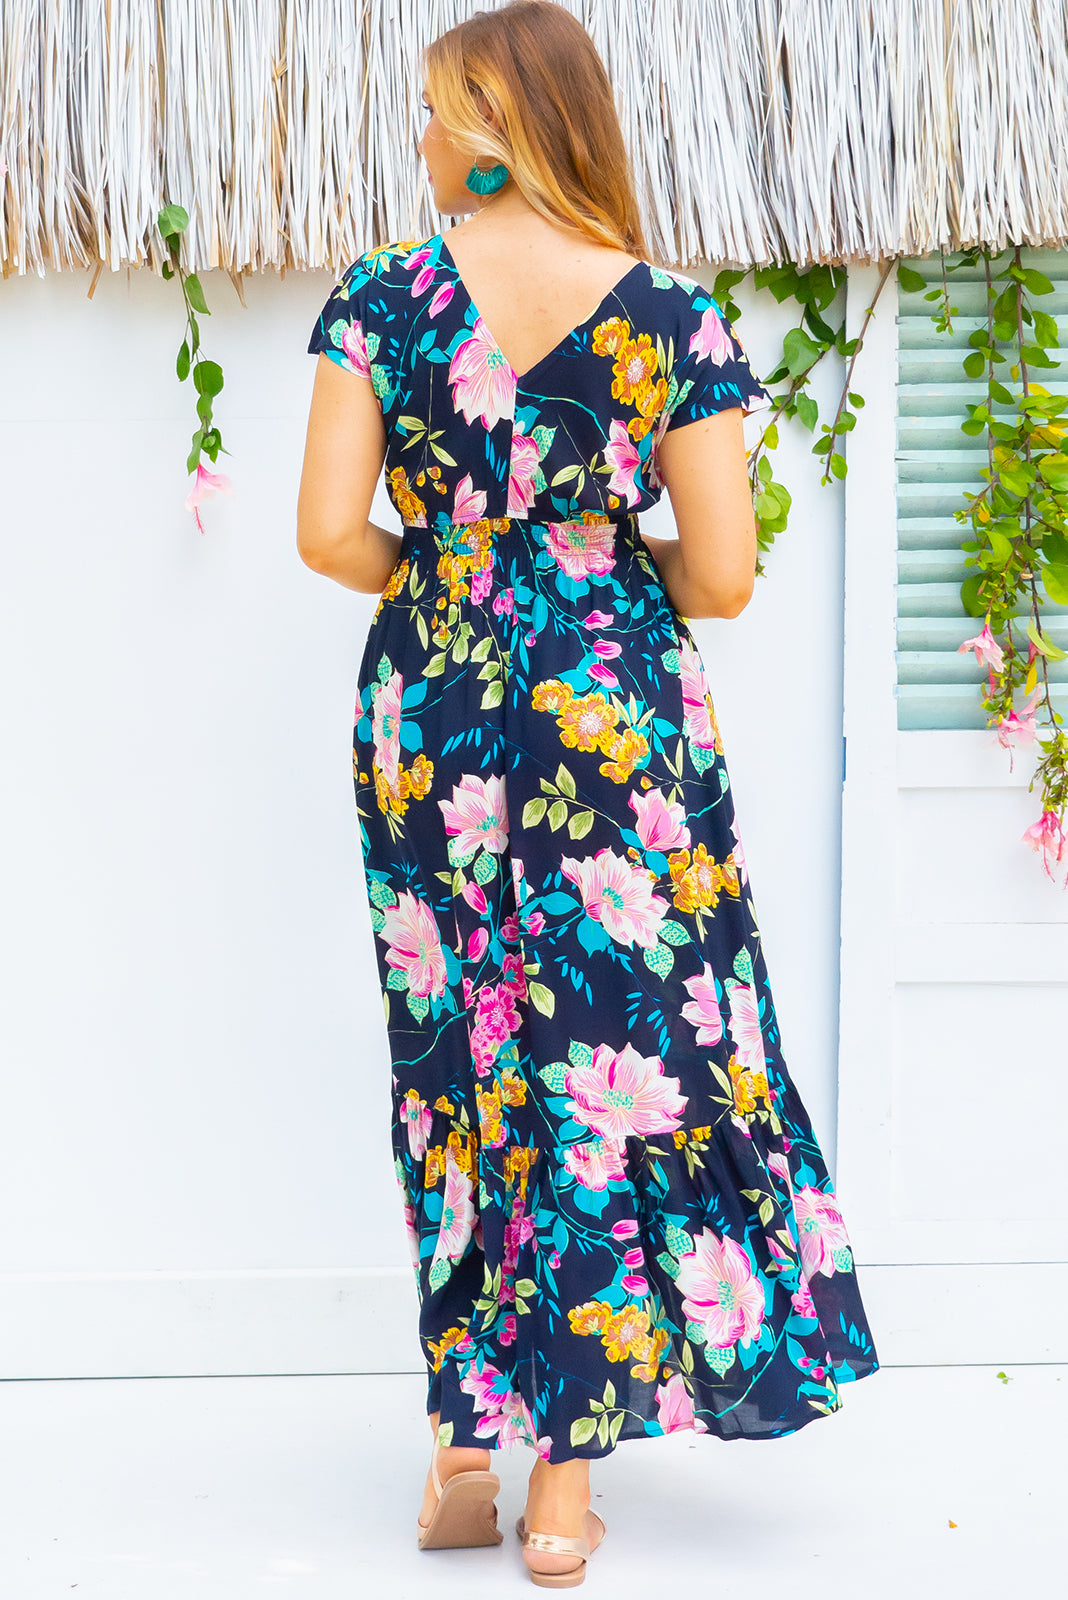 Nellie Waterlilly Navy Maxi Dress Maxi dress features elasticated empire line with a cap sleeve and deep v neck the fabric is a soft woven rayon in a bright navy based tropical inspired floral print